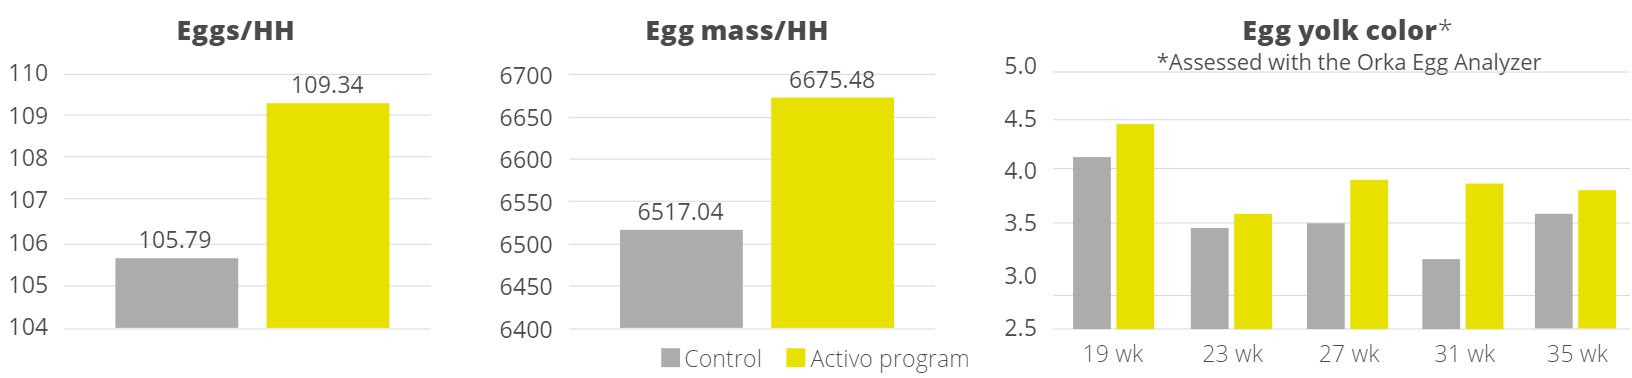 Performance results from Hy-line layers, Activo program vs. control, eggs